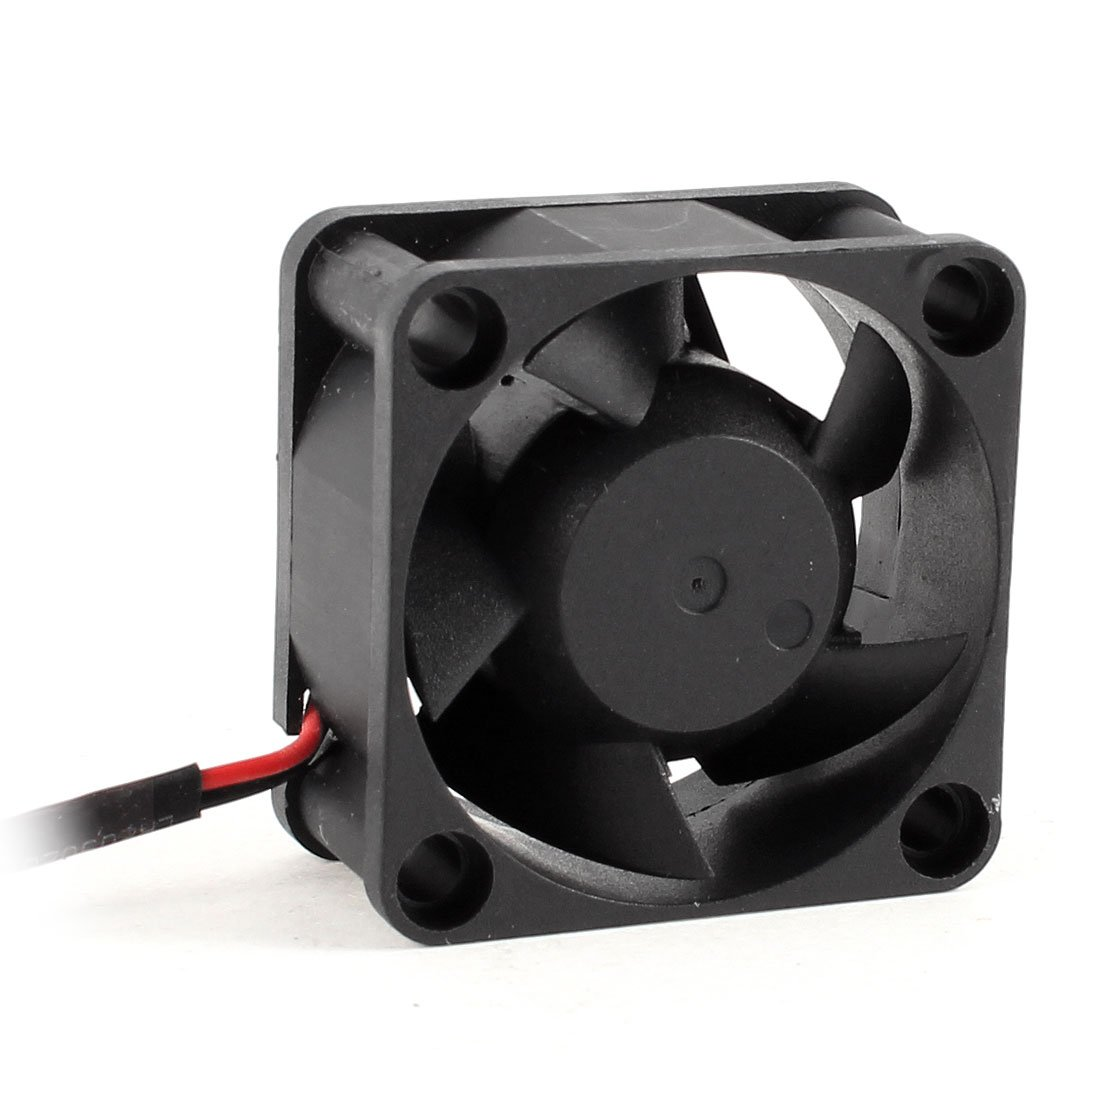 PROMOTION! Hot 40mm DC 5V 6.42CFM Chipset Cooling Fan Black for Computer CPU Cooler цена и фото